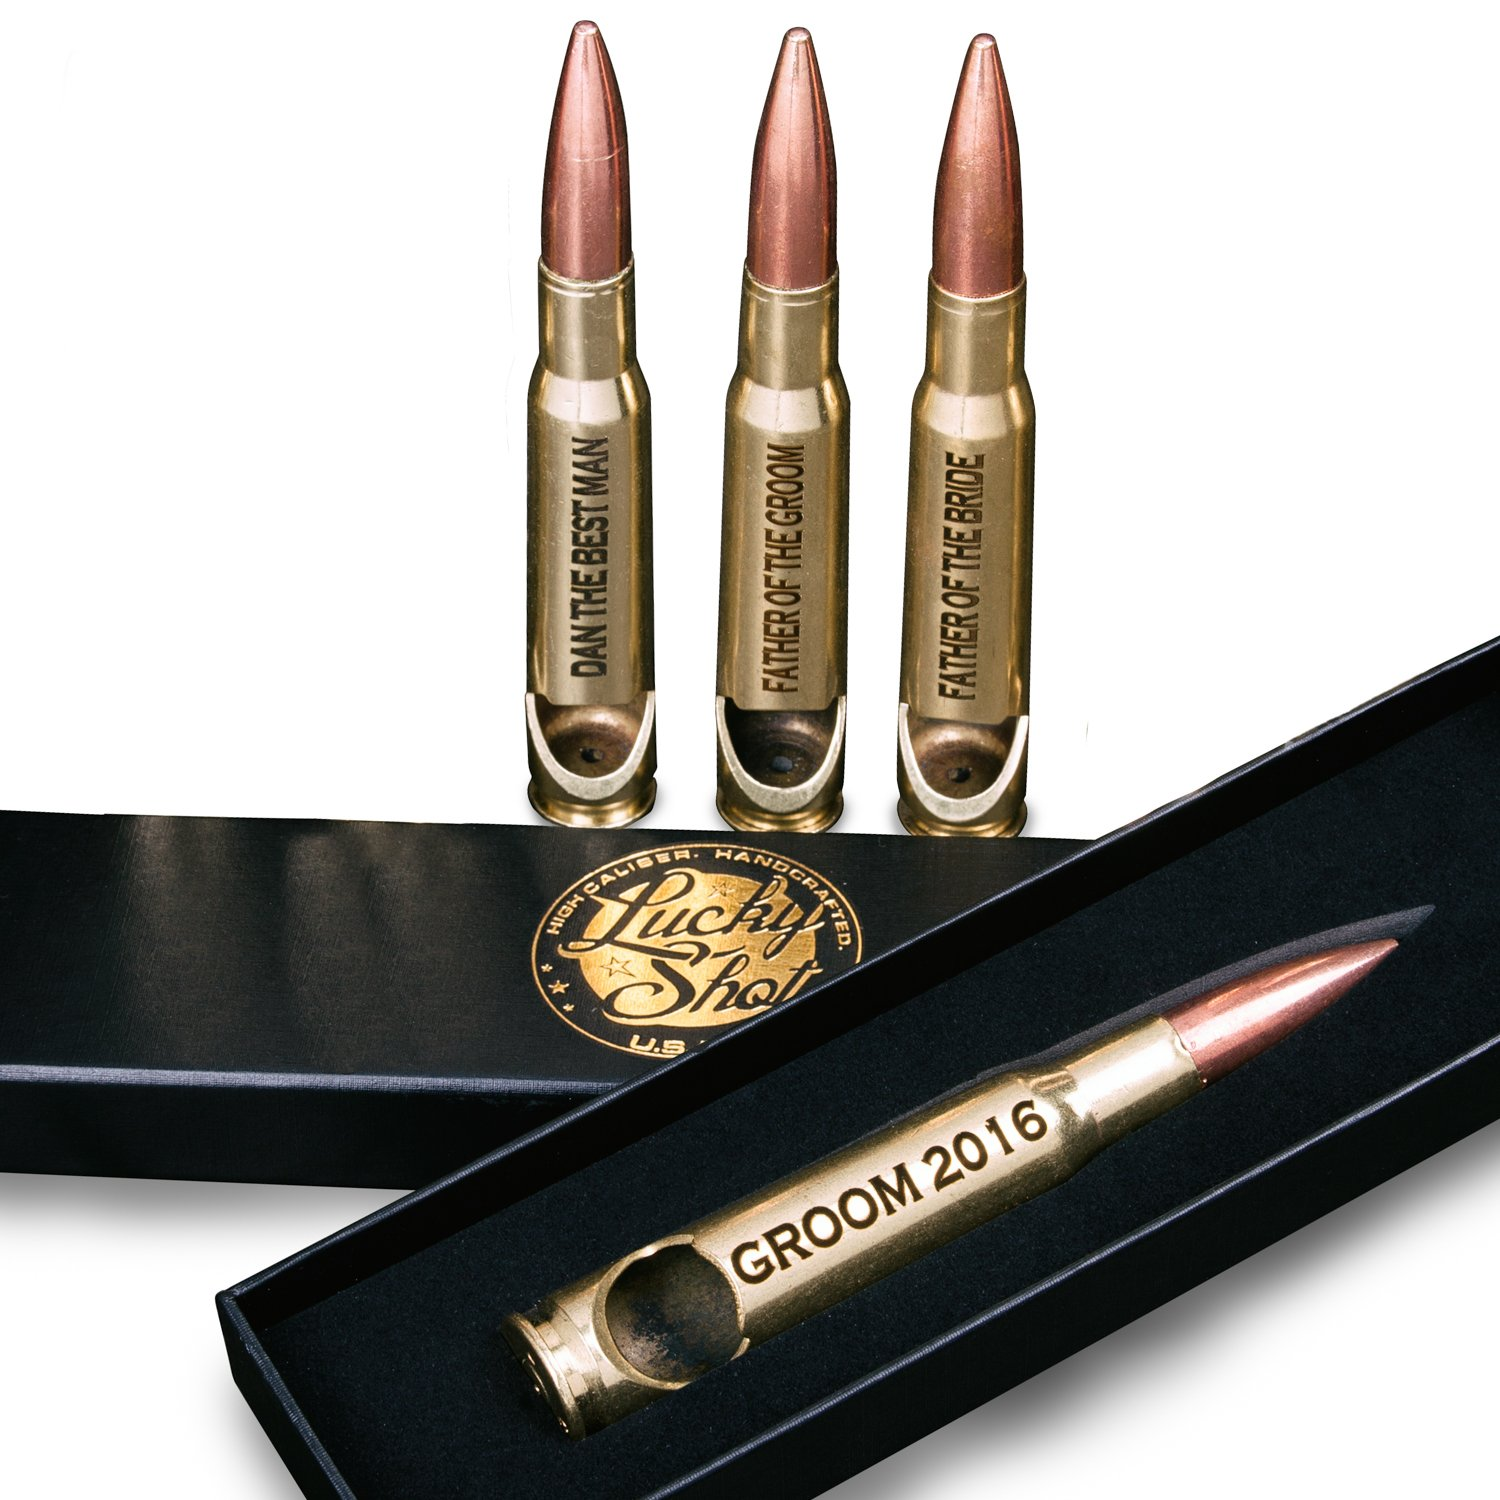 Groomsmen Set of 4 Personalized 50 Caliber BMG Bullet Bottle Openers in Brass with Gift Boxes